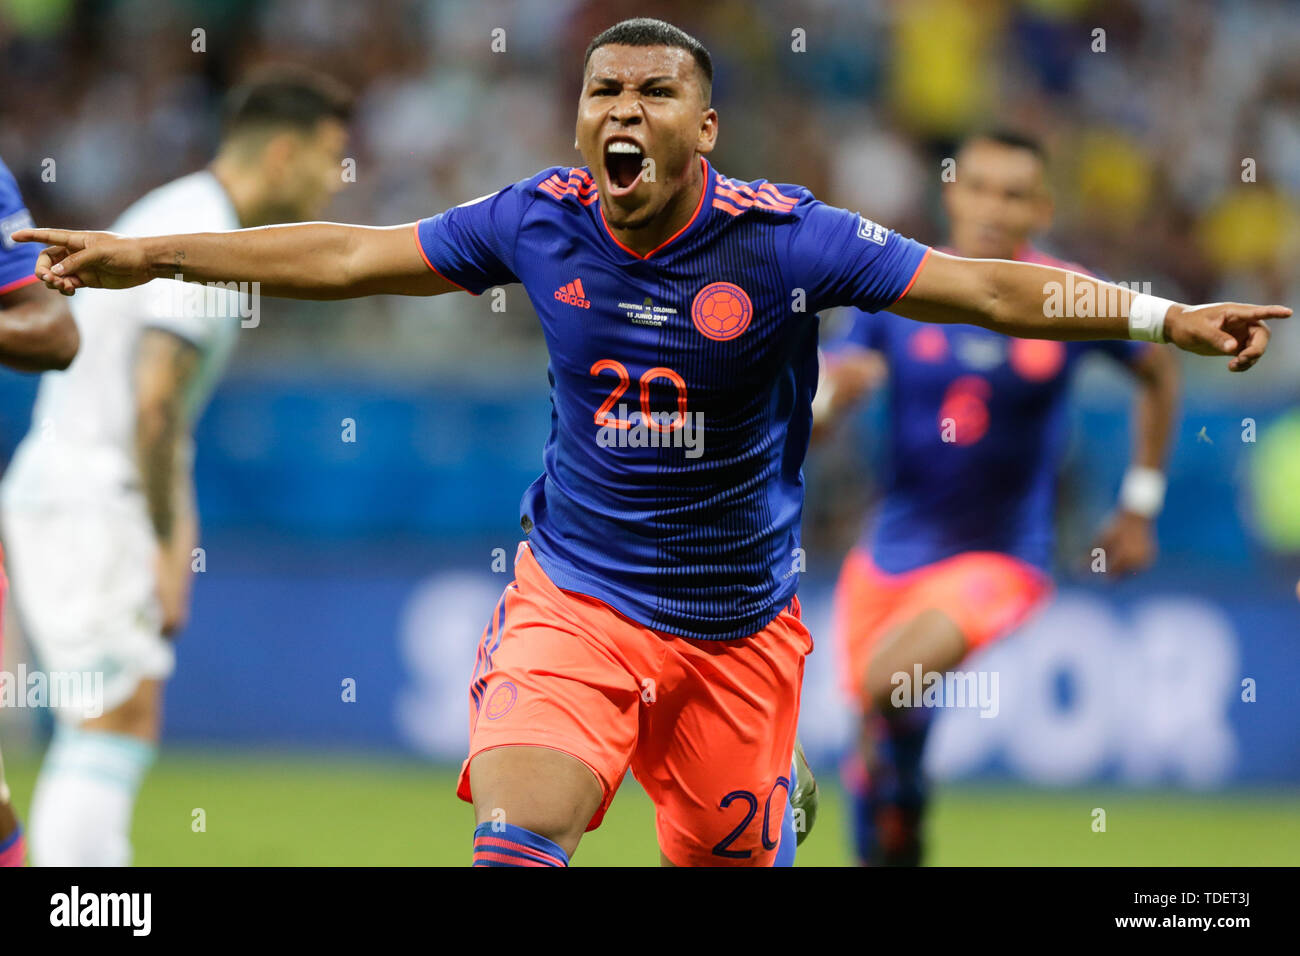 Salvador, Brazil. 15th June, 2019. Colombia's Roger Martinez(Front) celebrates a goal during the Copa America 2019 Group B match between Argentina and Colombia in Salvador, Brazil, June 15, 2019. Colombia won 2-0. Credit: Francisco Canedo/Xinhua/Alamy Live News Stock Photo